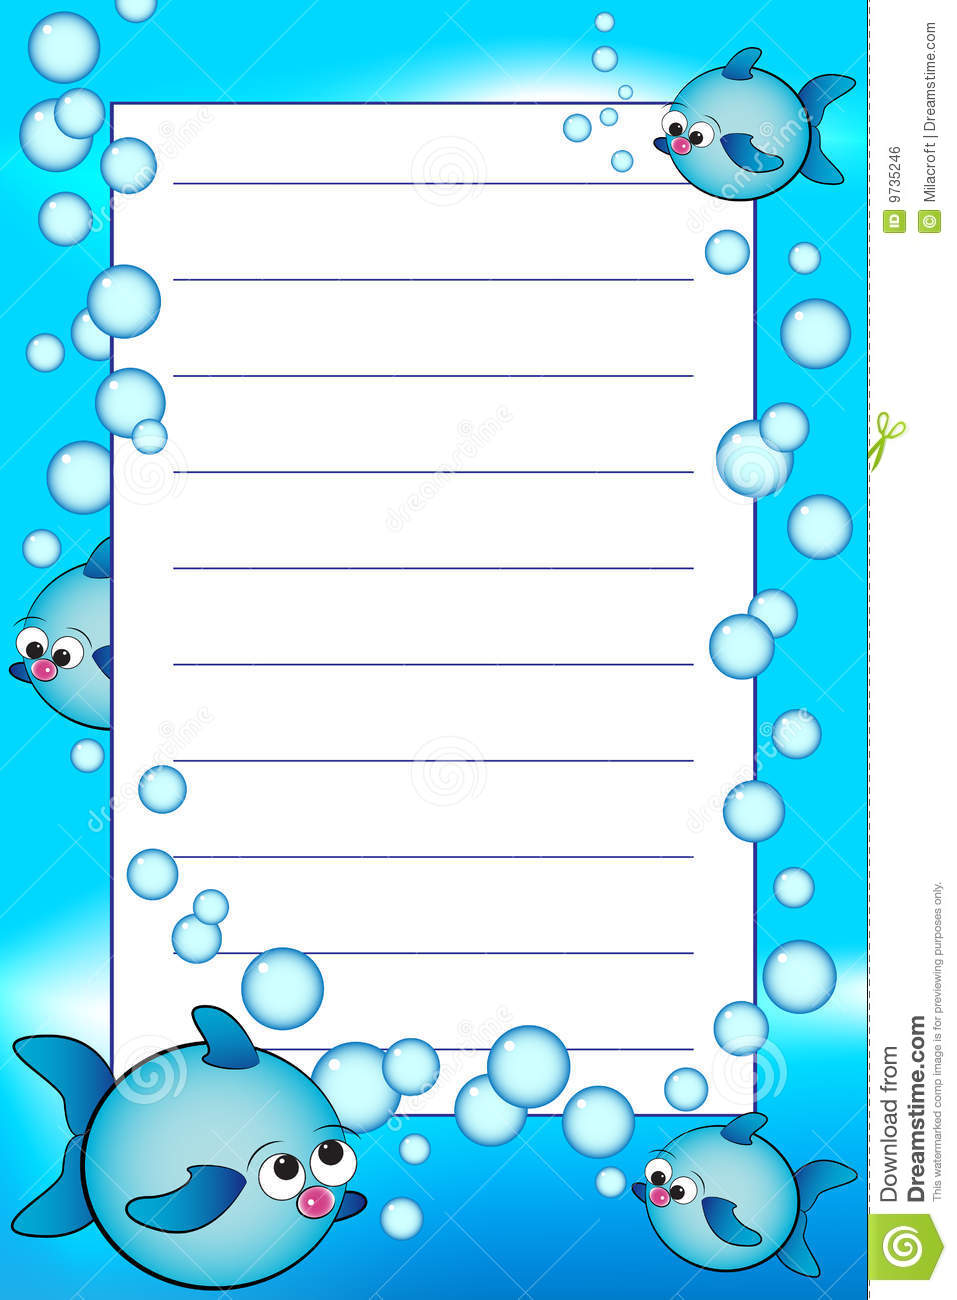 Kid Notebook With Blank Lined Page Royalty Free Image – Blank Lined Page